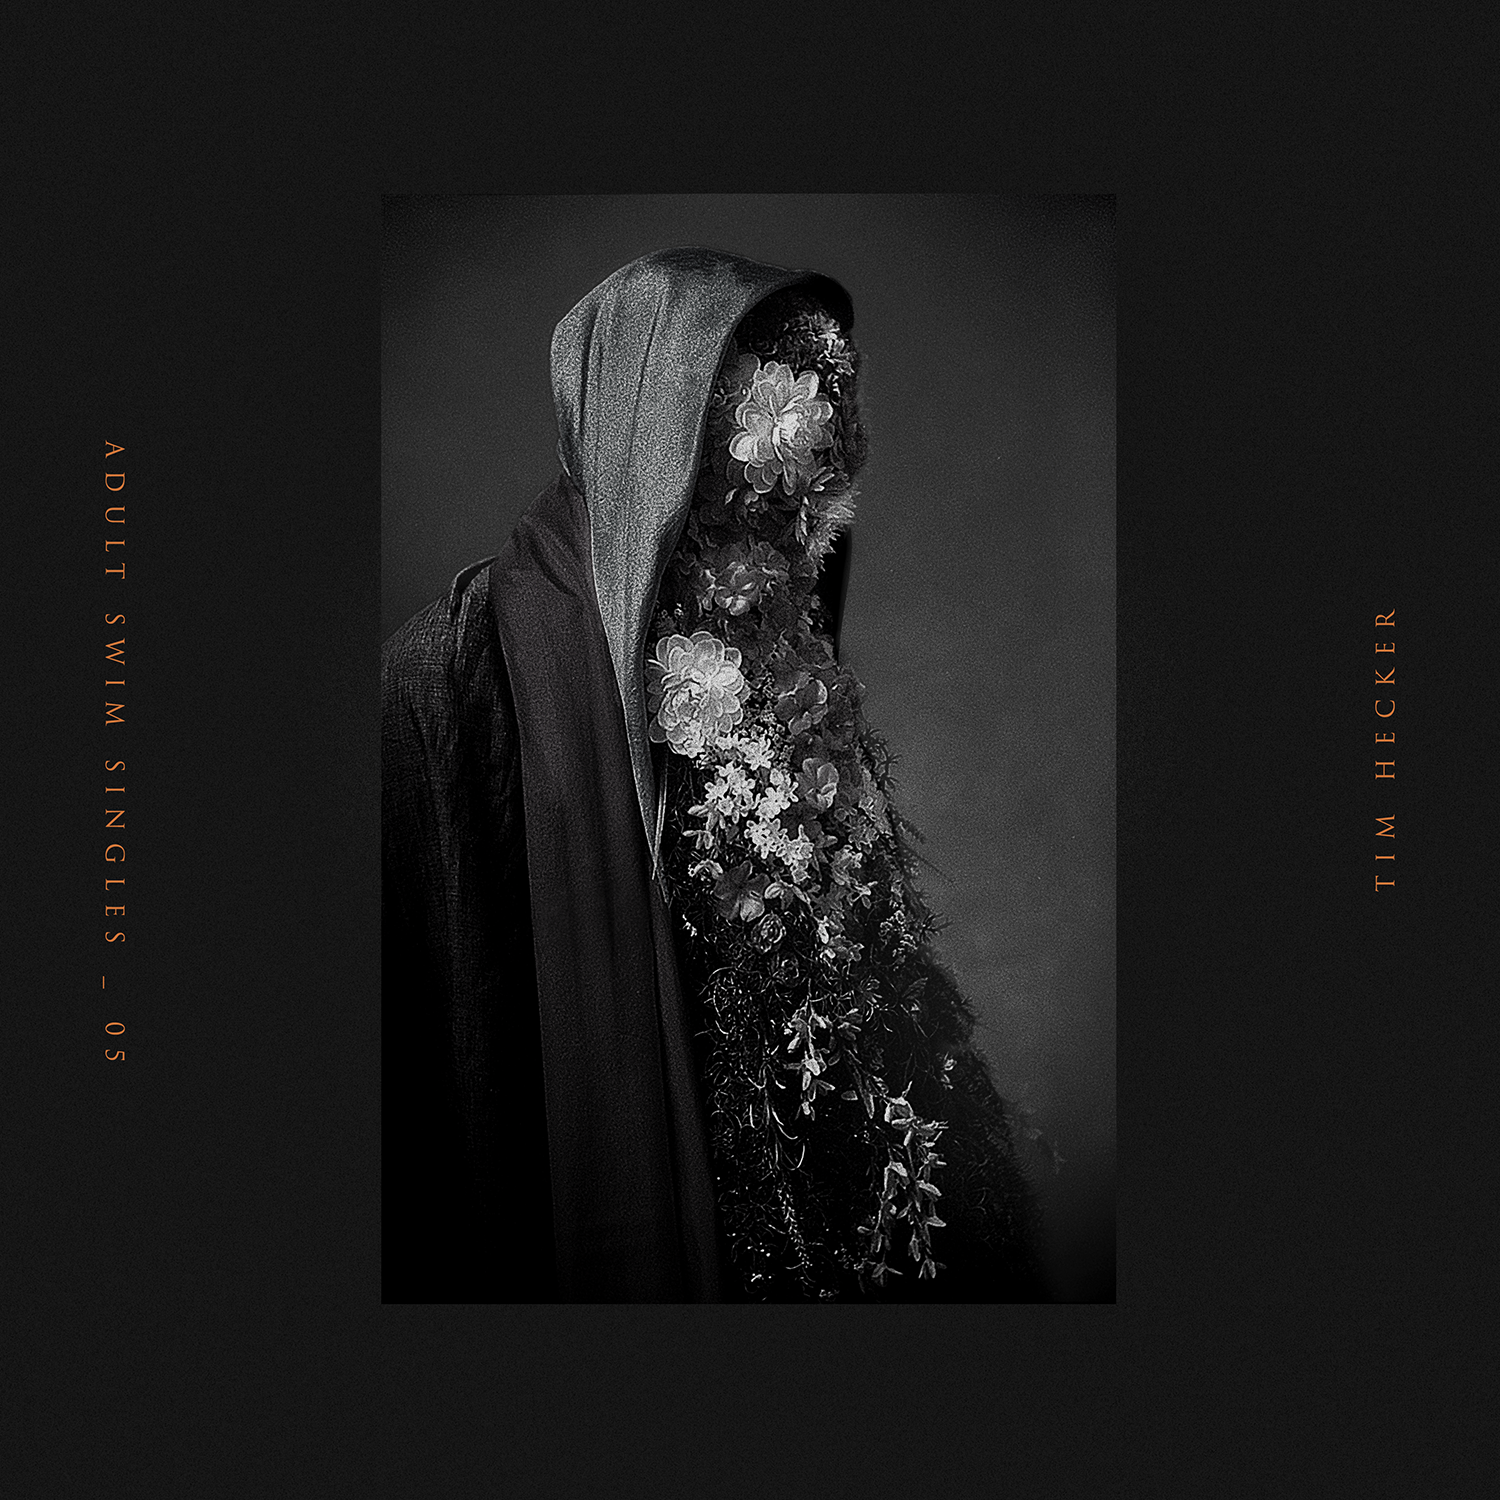 Art direction, photography and design for Tim Hecker's  Amp's,Drugs,Mellotron  single. I constructed a costume featuring a mask of handsewn silk flowers. Photography support from Brian Smith.